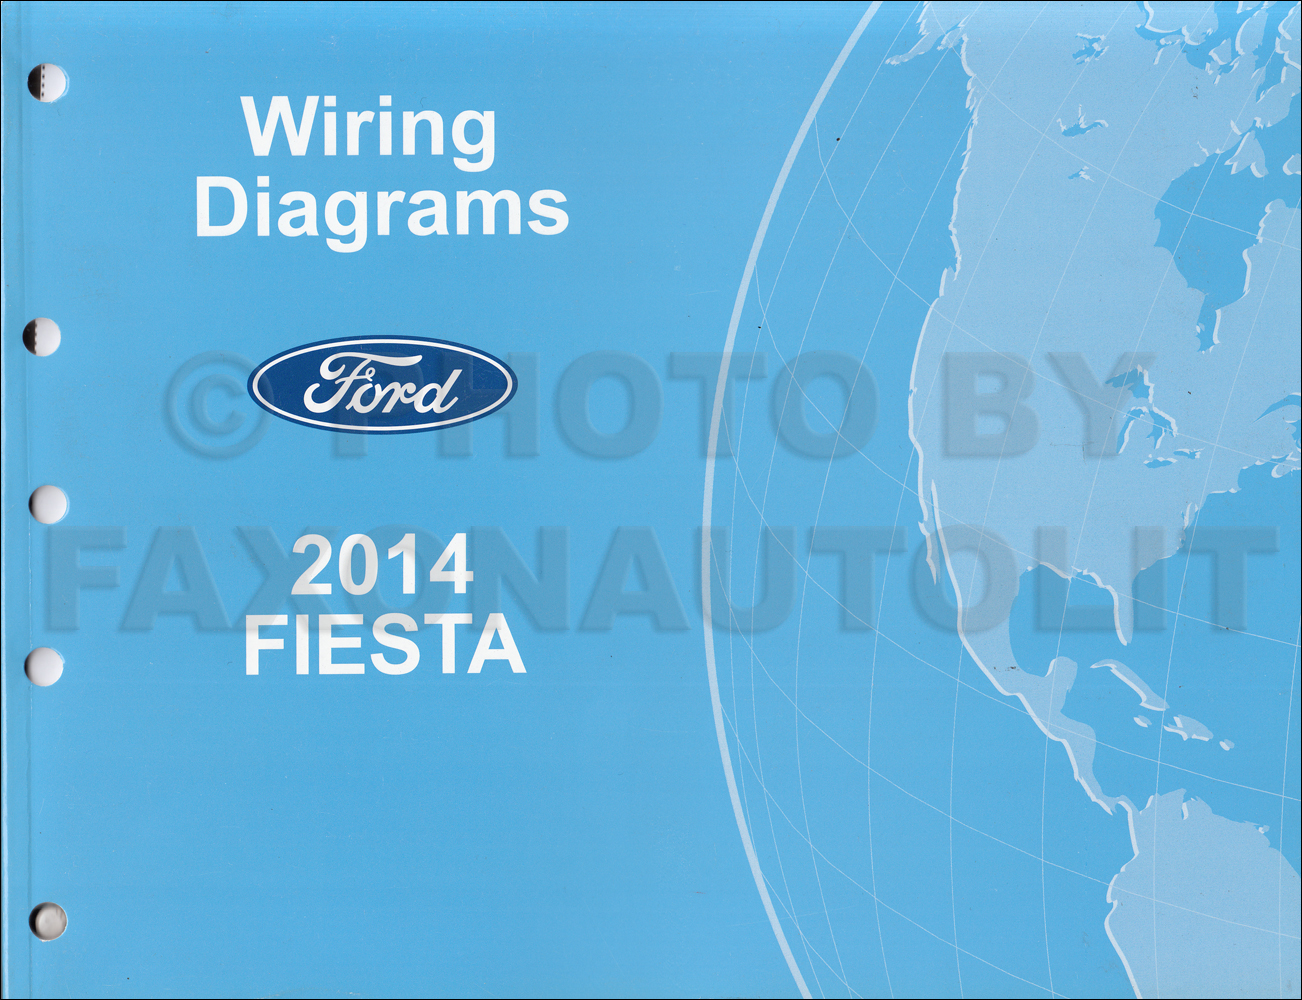 wiring diagram 2011 ford fiesta 2014 ford fiesta wiring diagram manual original wire diagram for ford fiesta 2012